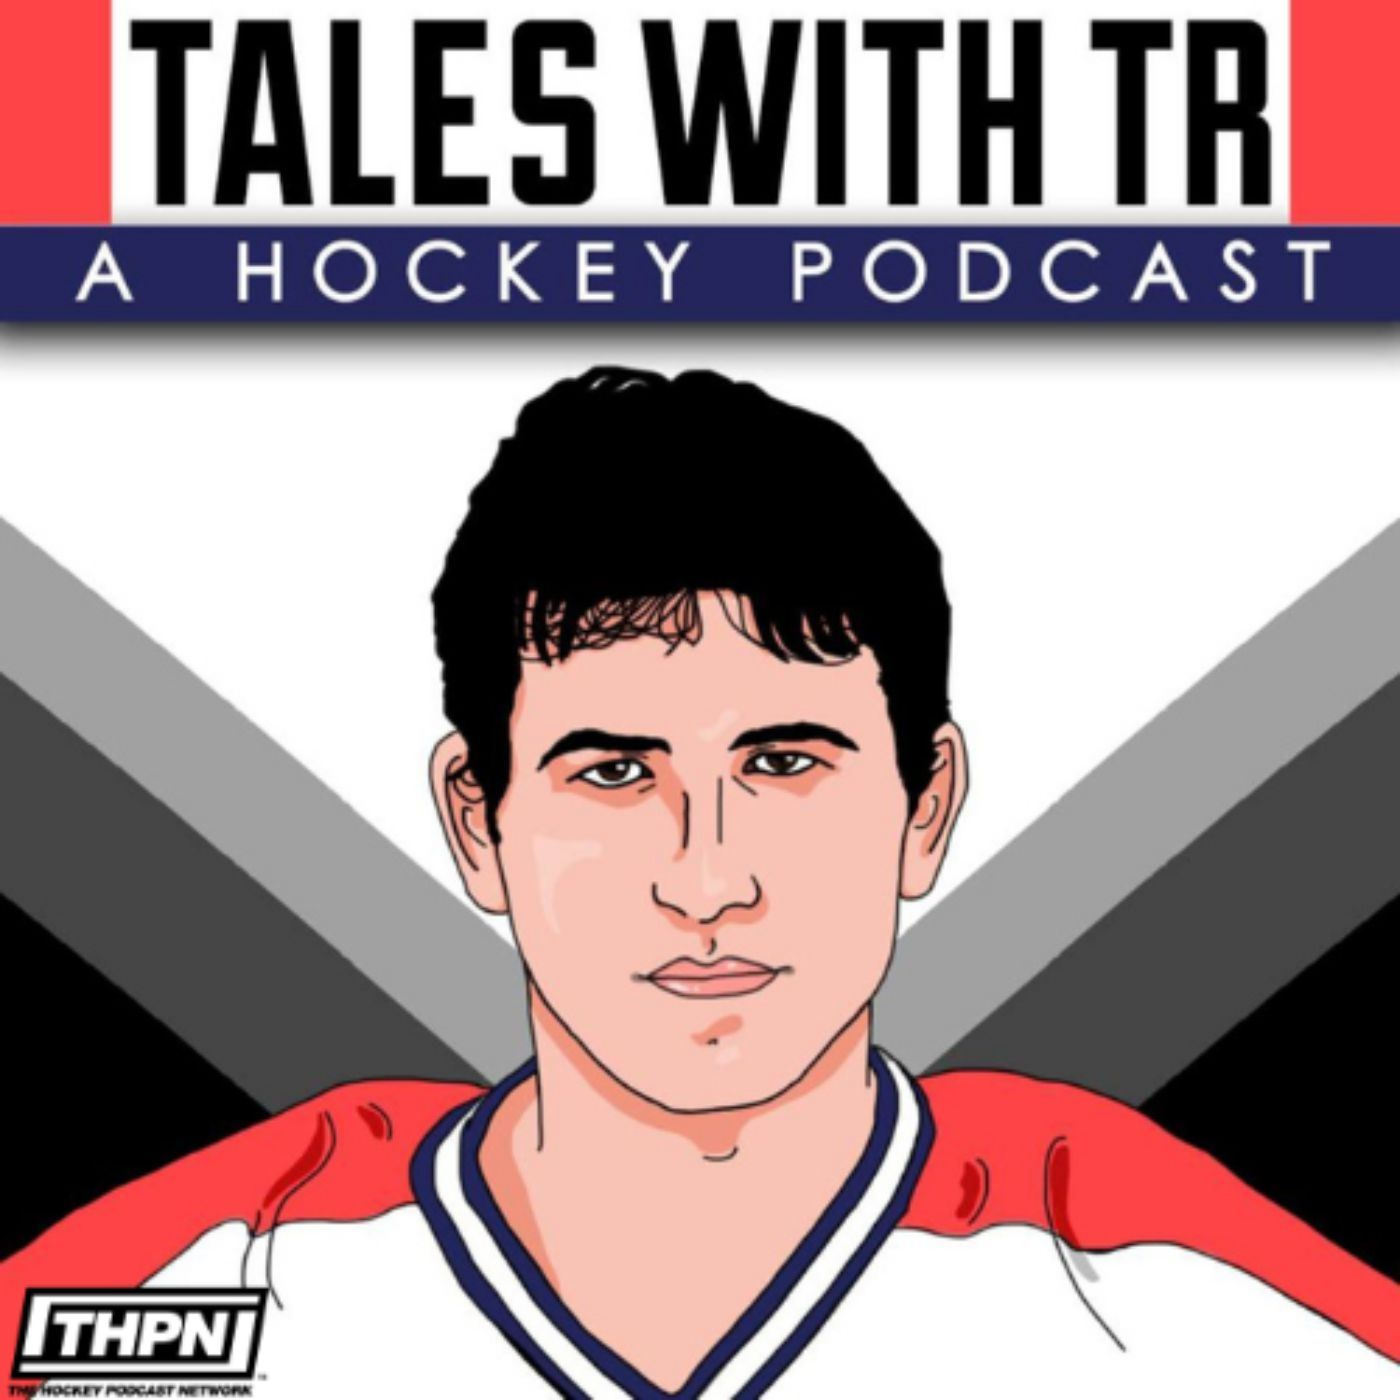 Tales with TR: A Hockey Podcast